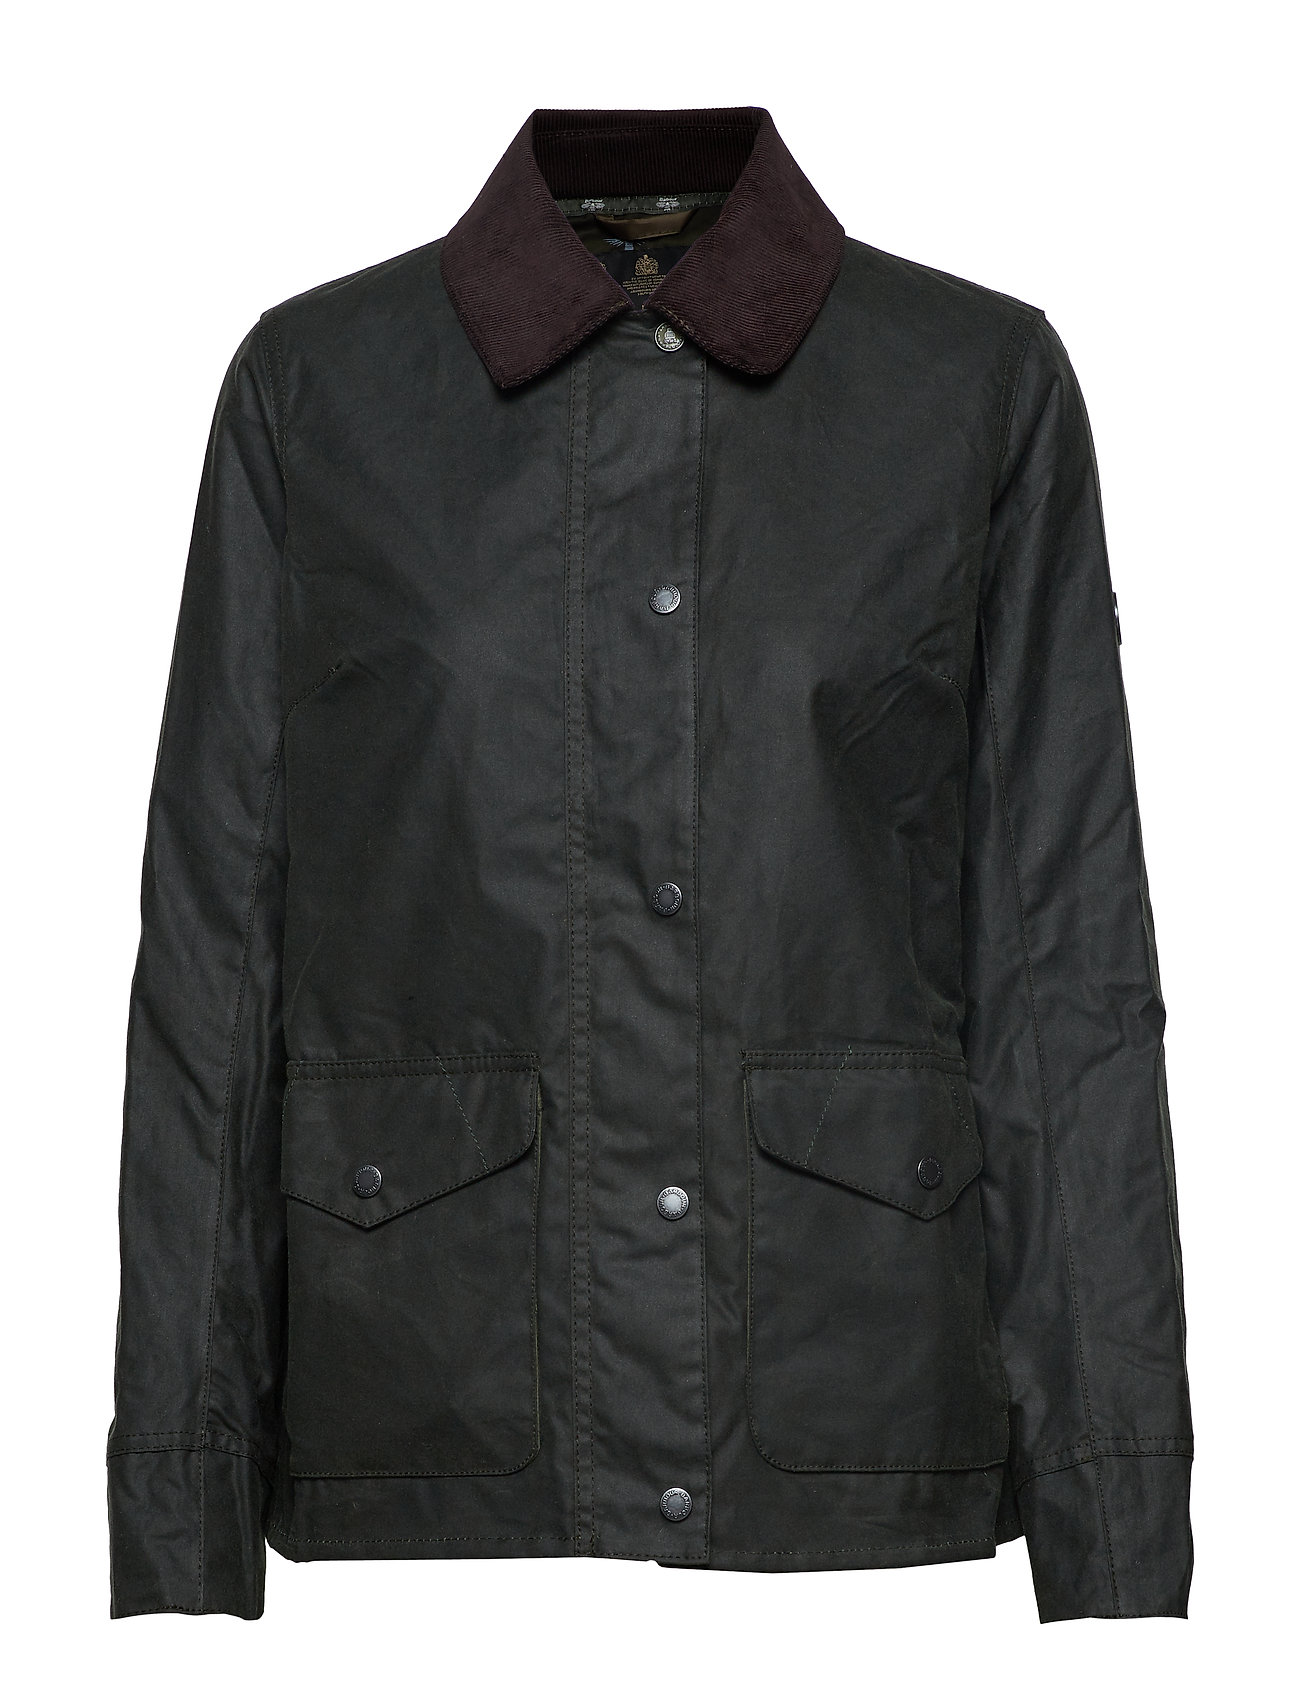 Barbour Barbour Shoreline Wax